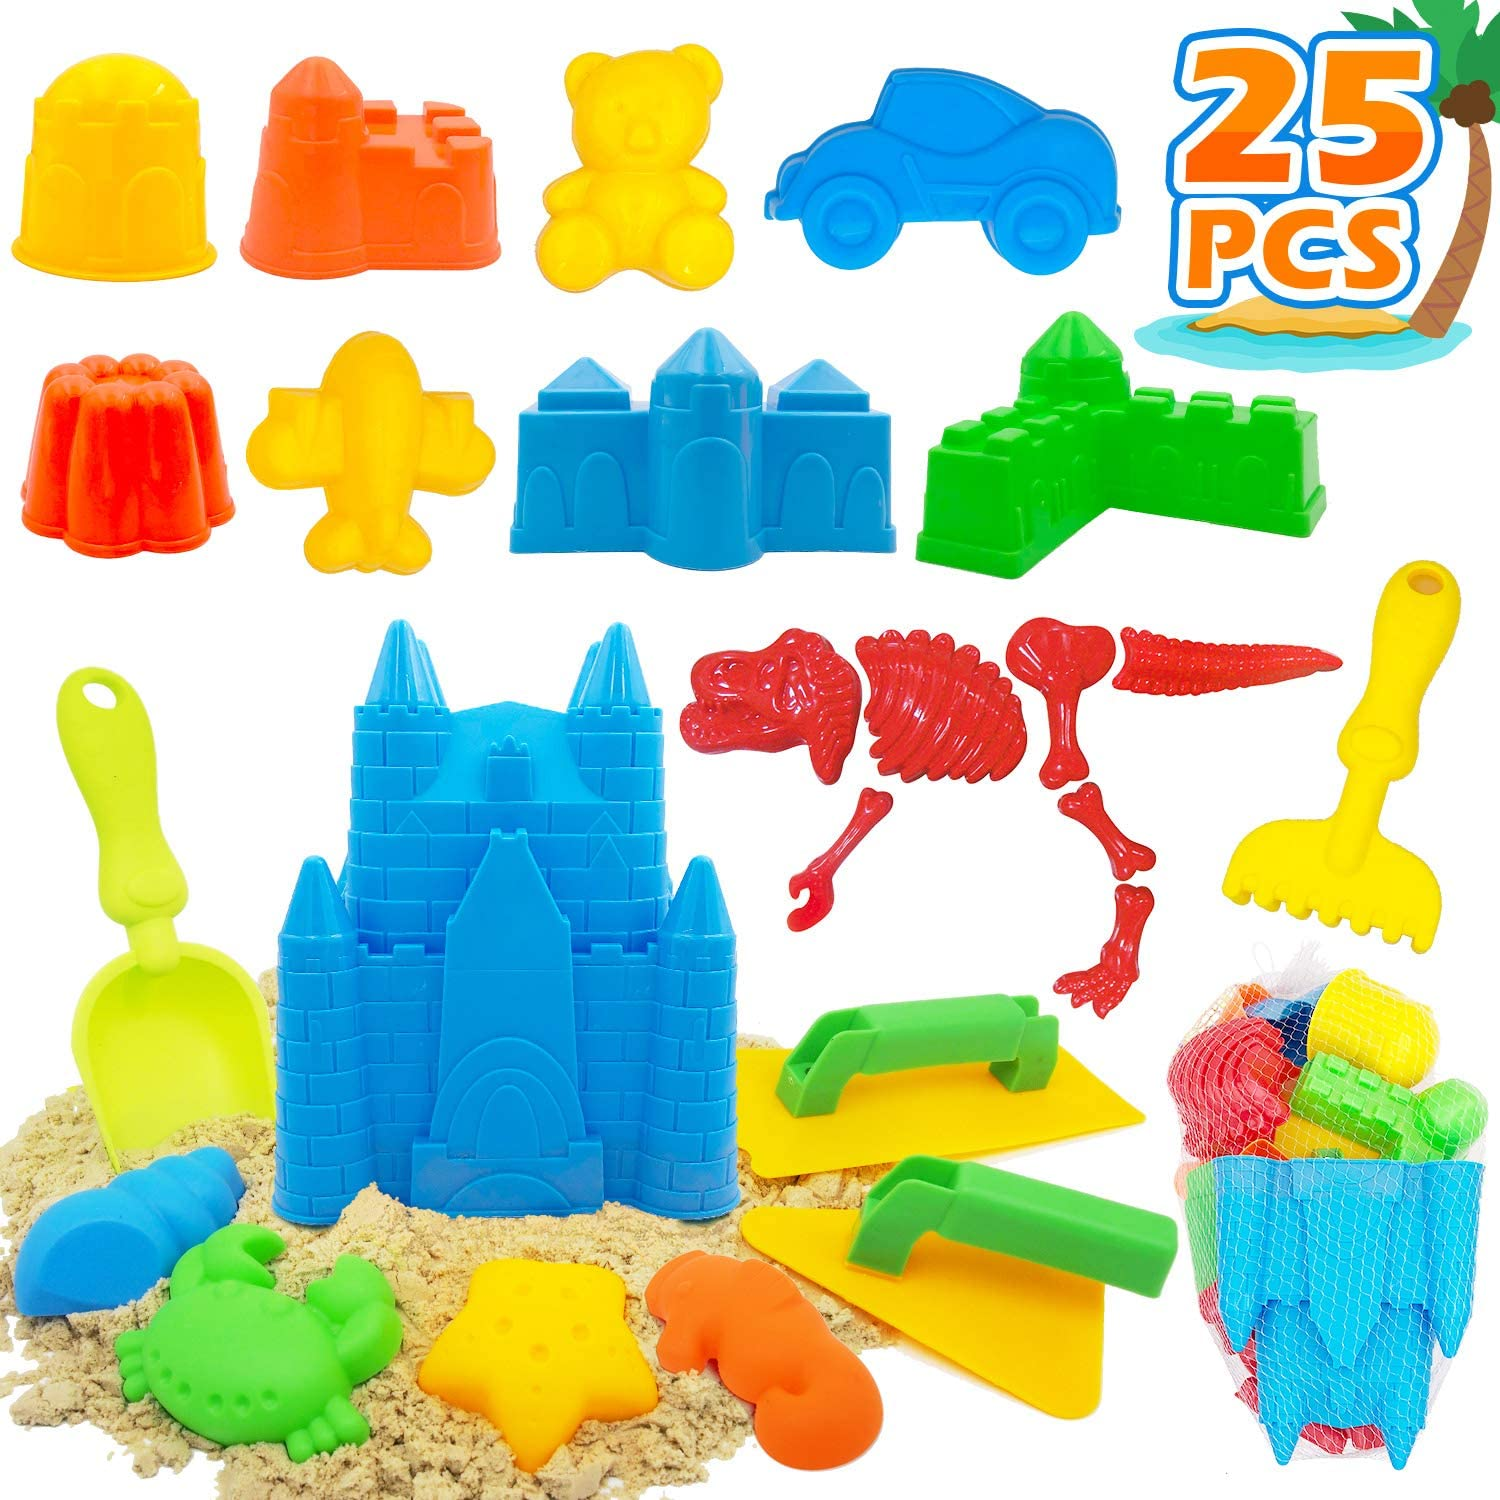 Raleigh Mall 25 Pcs Kids Beach Fashionable Sand Castle Set Includes Toys Buck